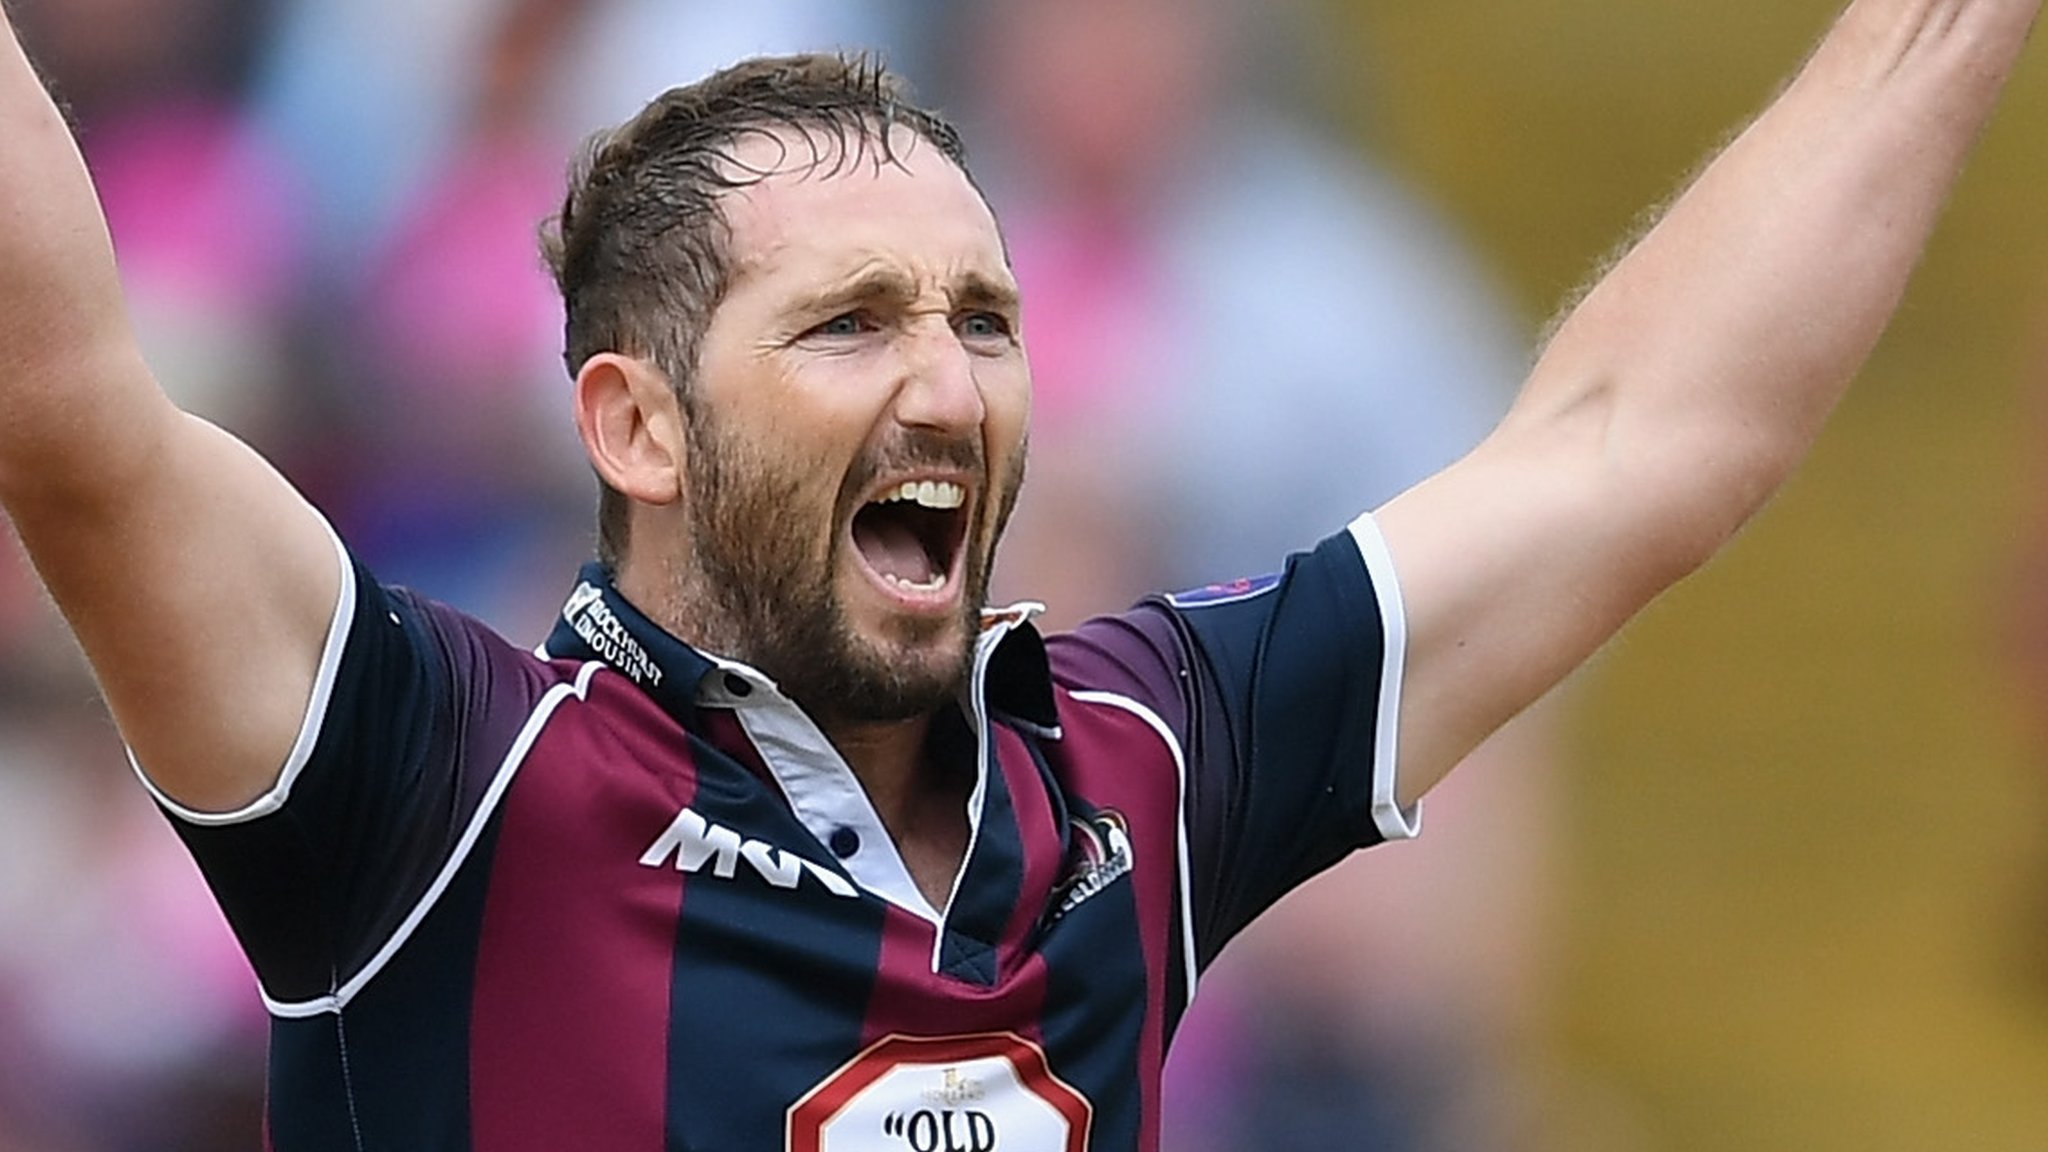 Northants' Crook to retire at season's end